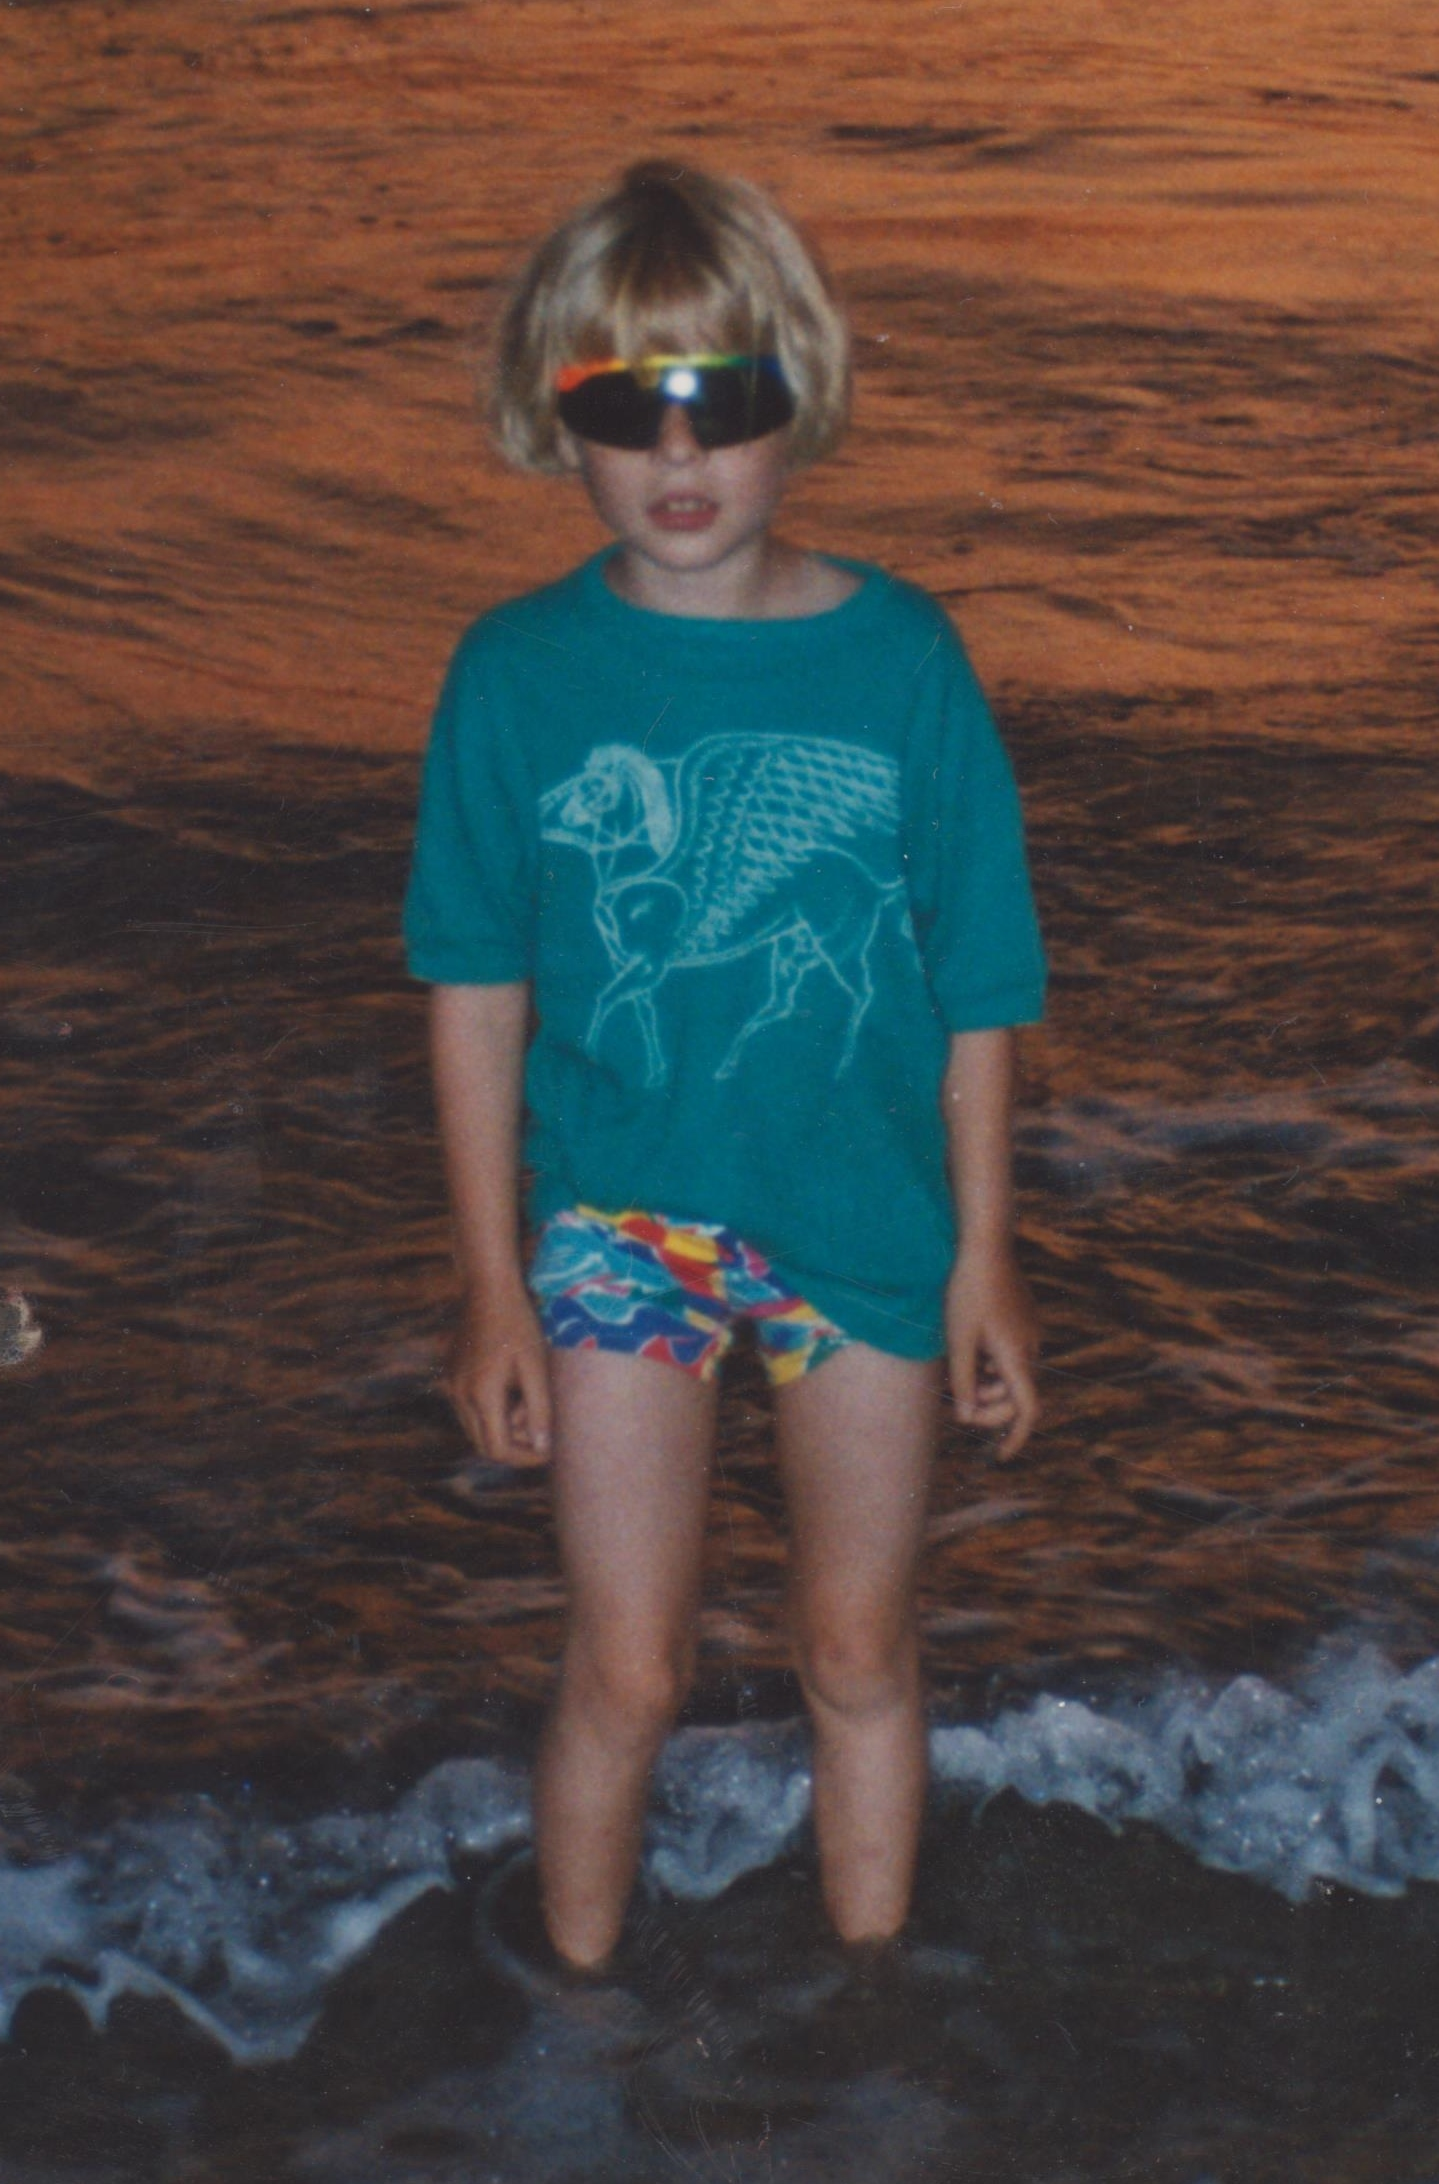 Rosie, at the age of 6, stands in the sea at sunset